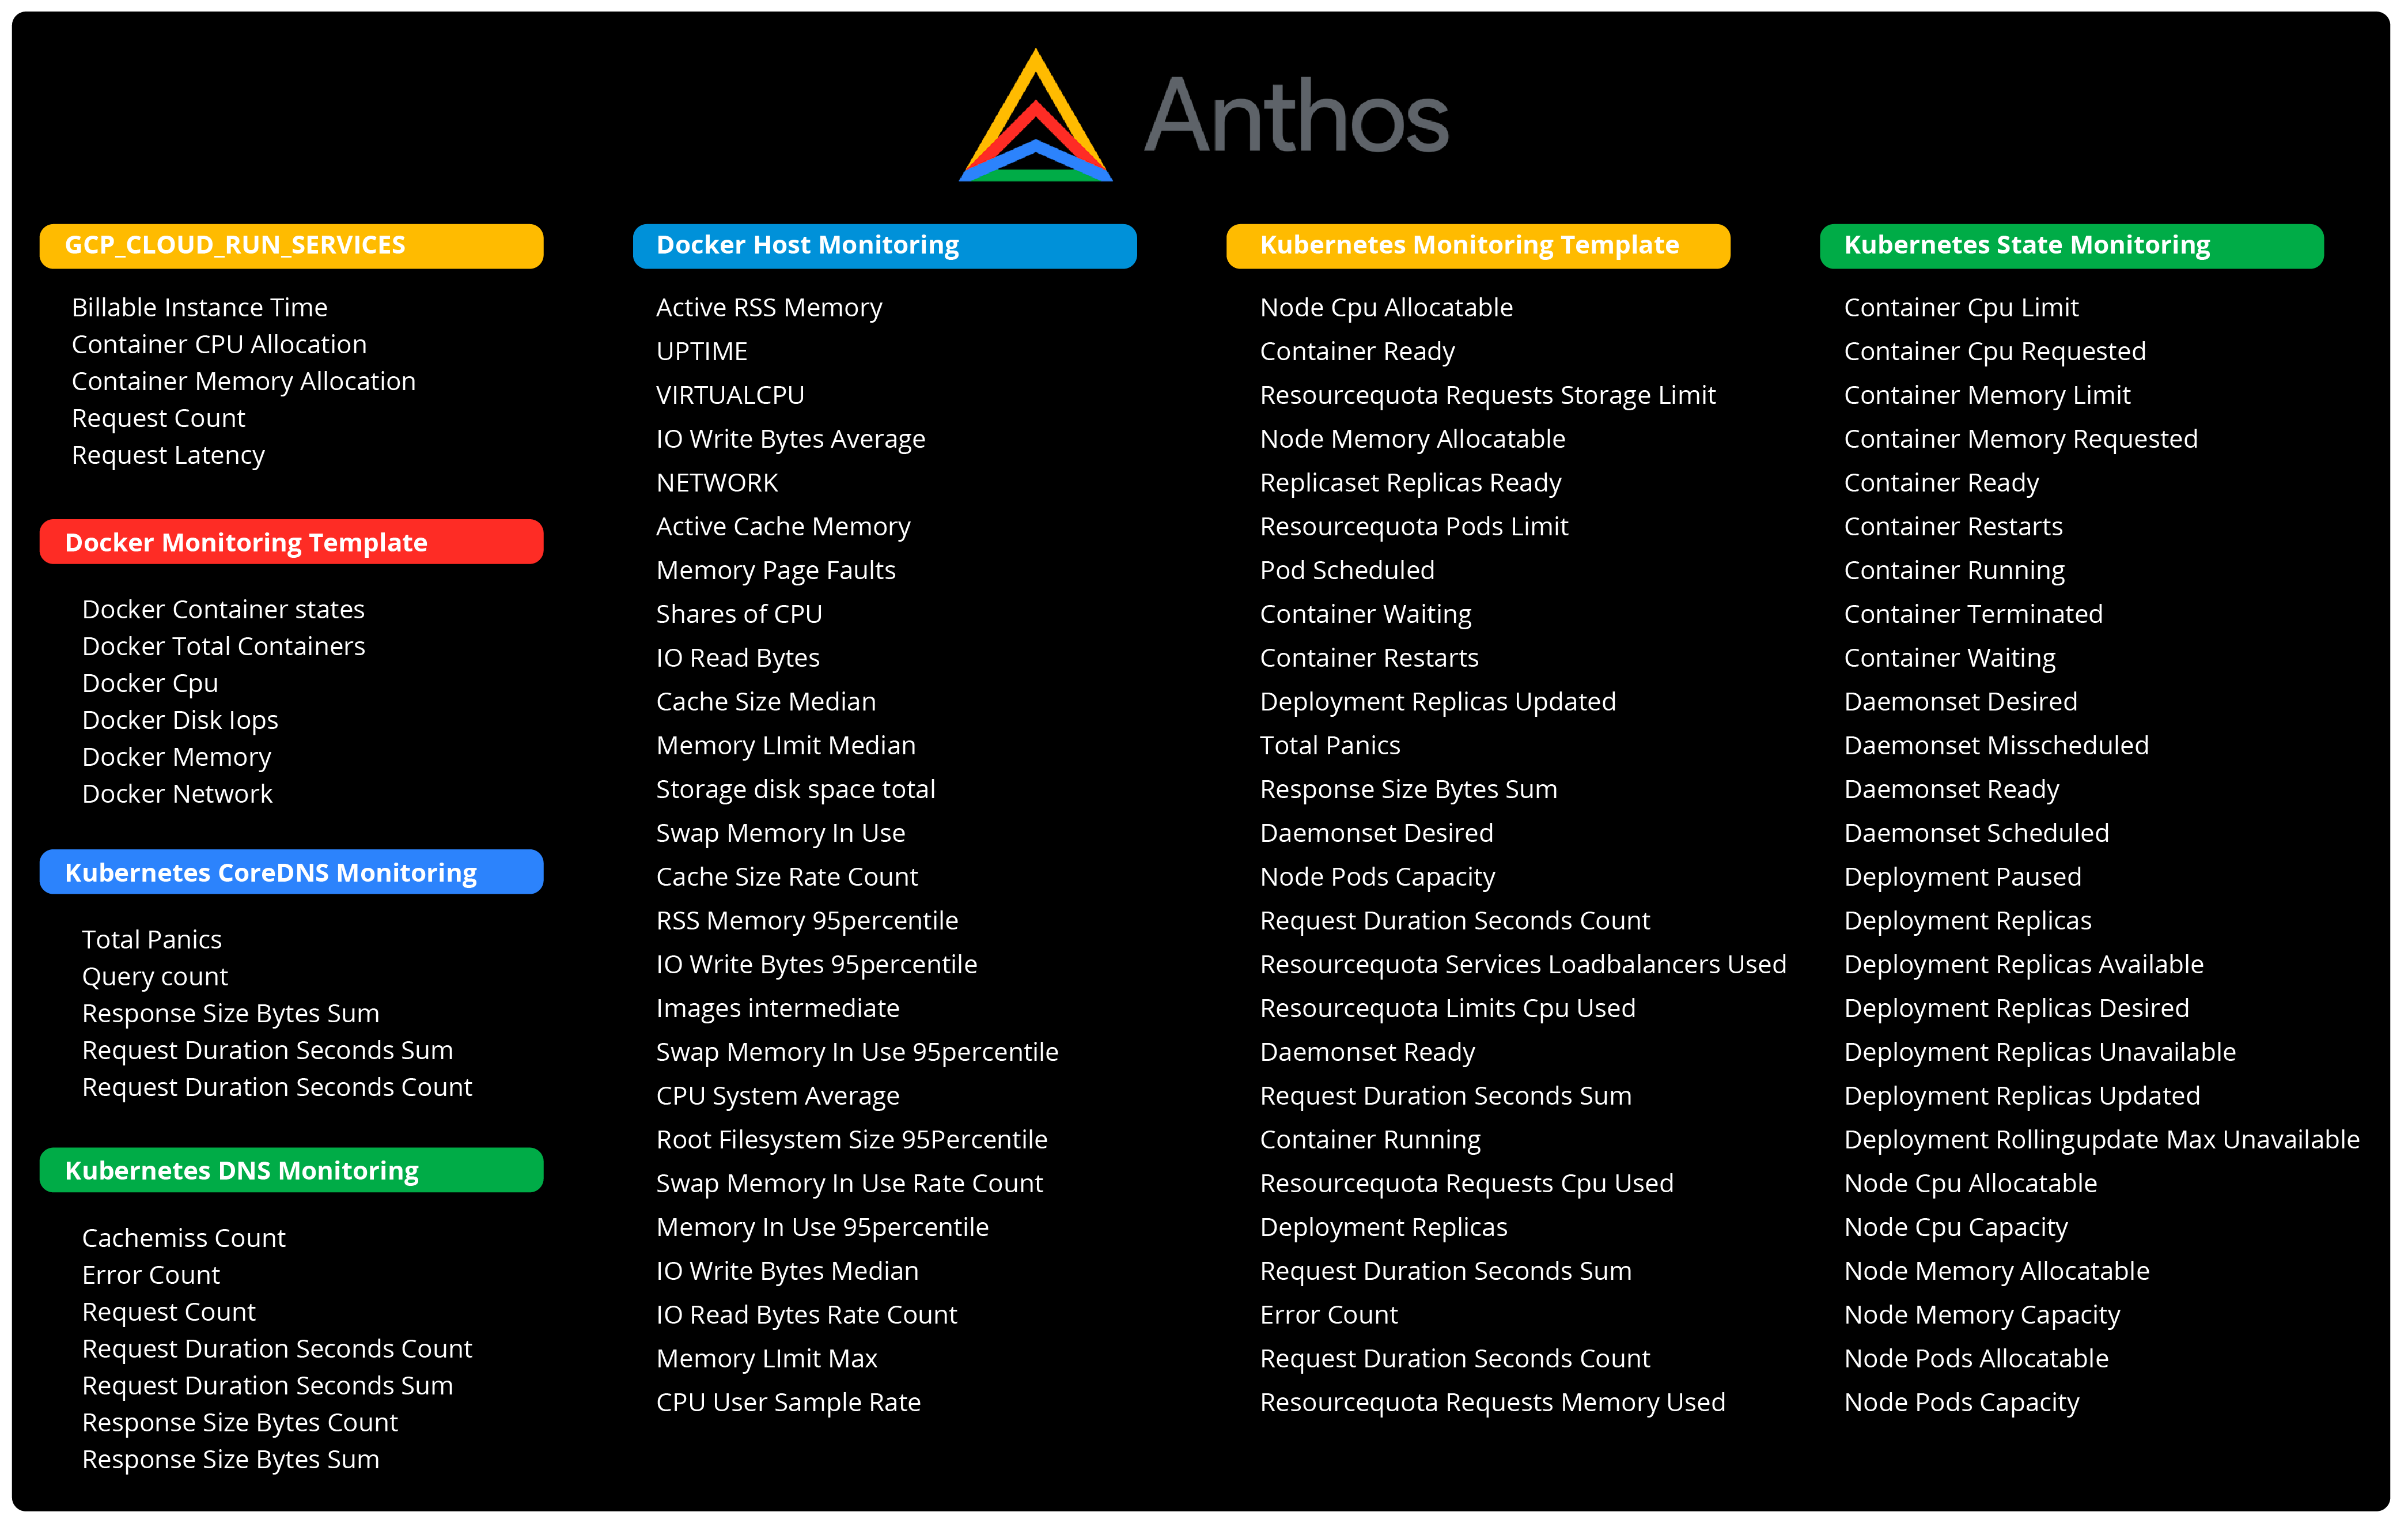 Infrastructure-that-supports-Anthos@2x-8